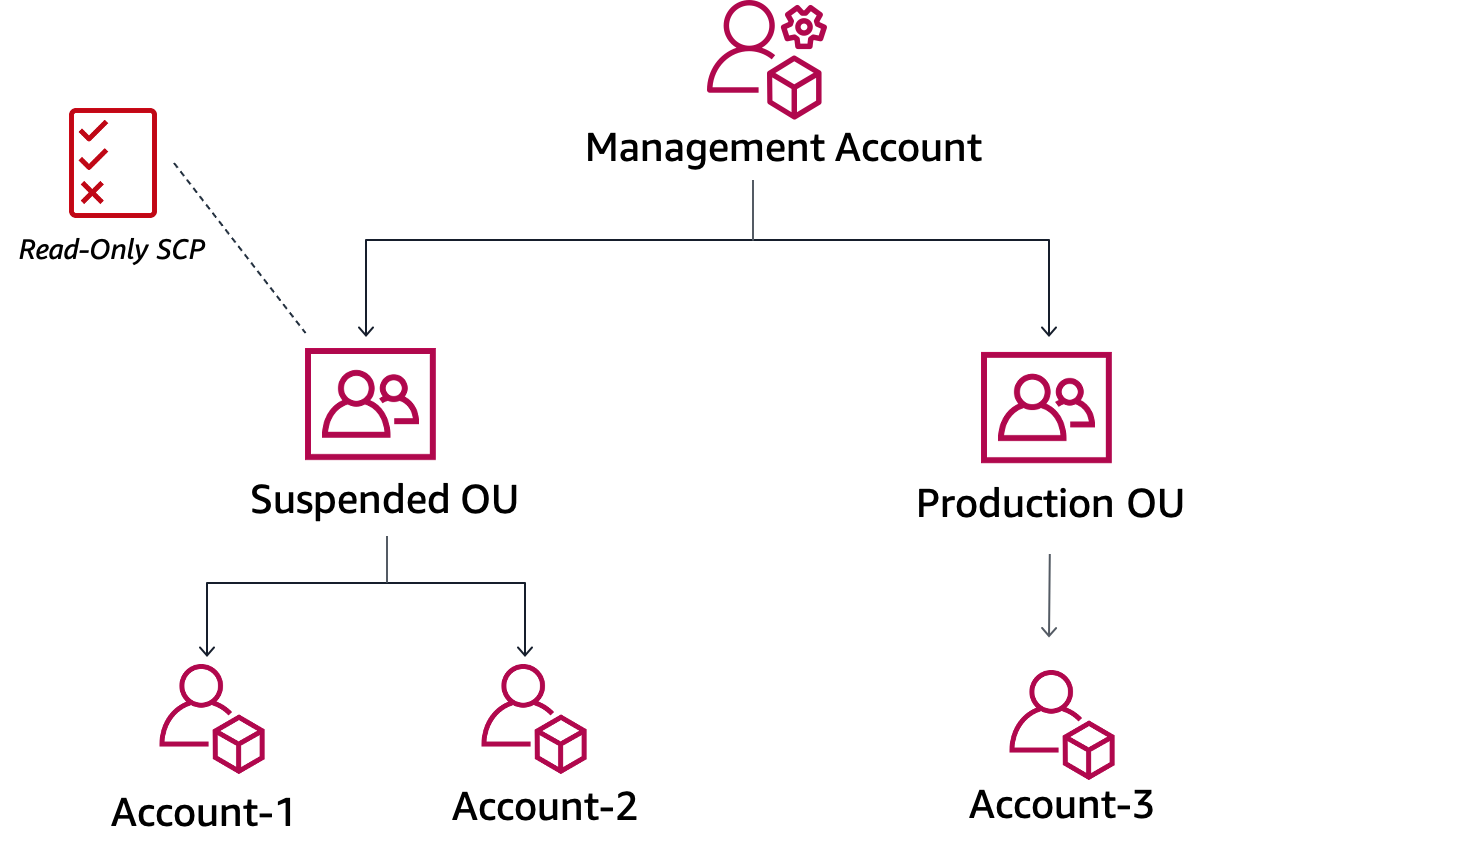 In the organization tree diagram, the AWS management account appears at the top, followed by OUs and child accounts. The read-only SCP is applied to the suspended OU.